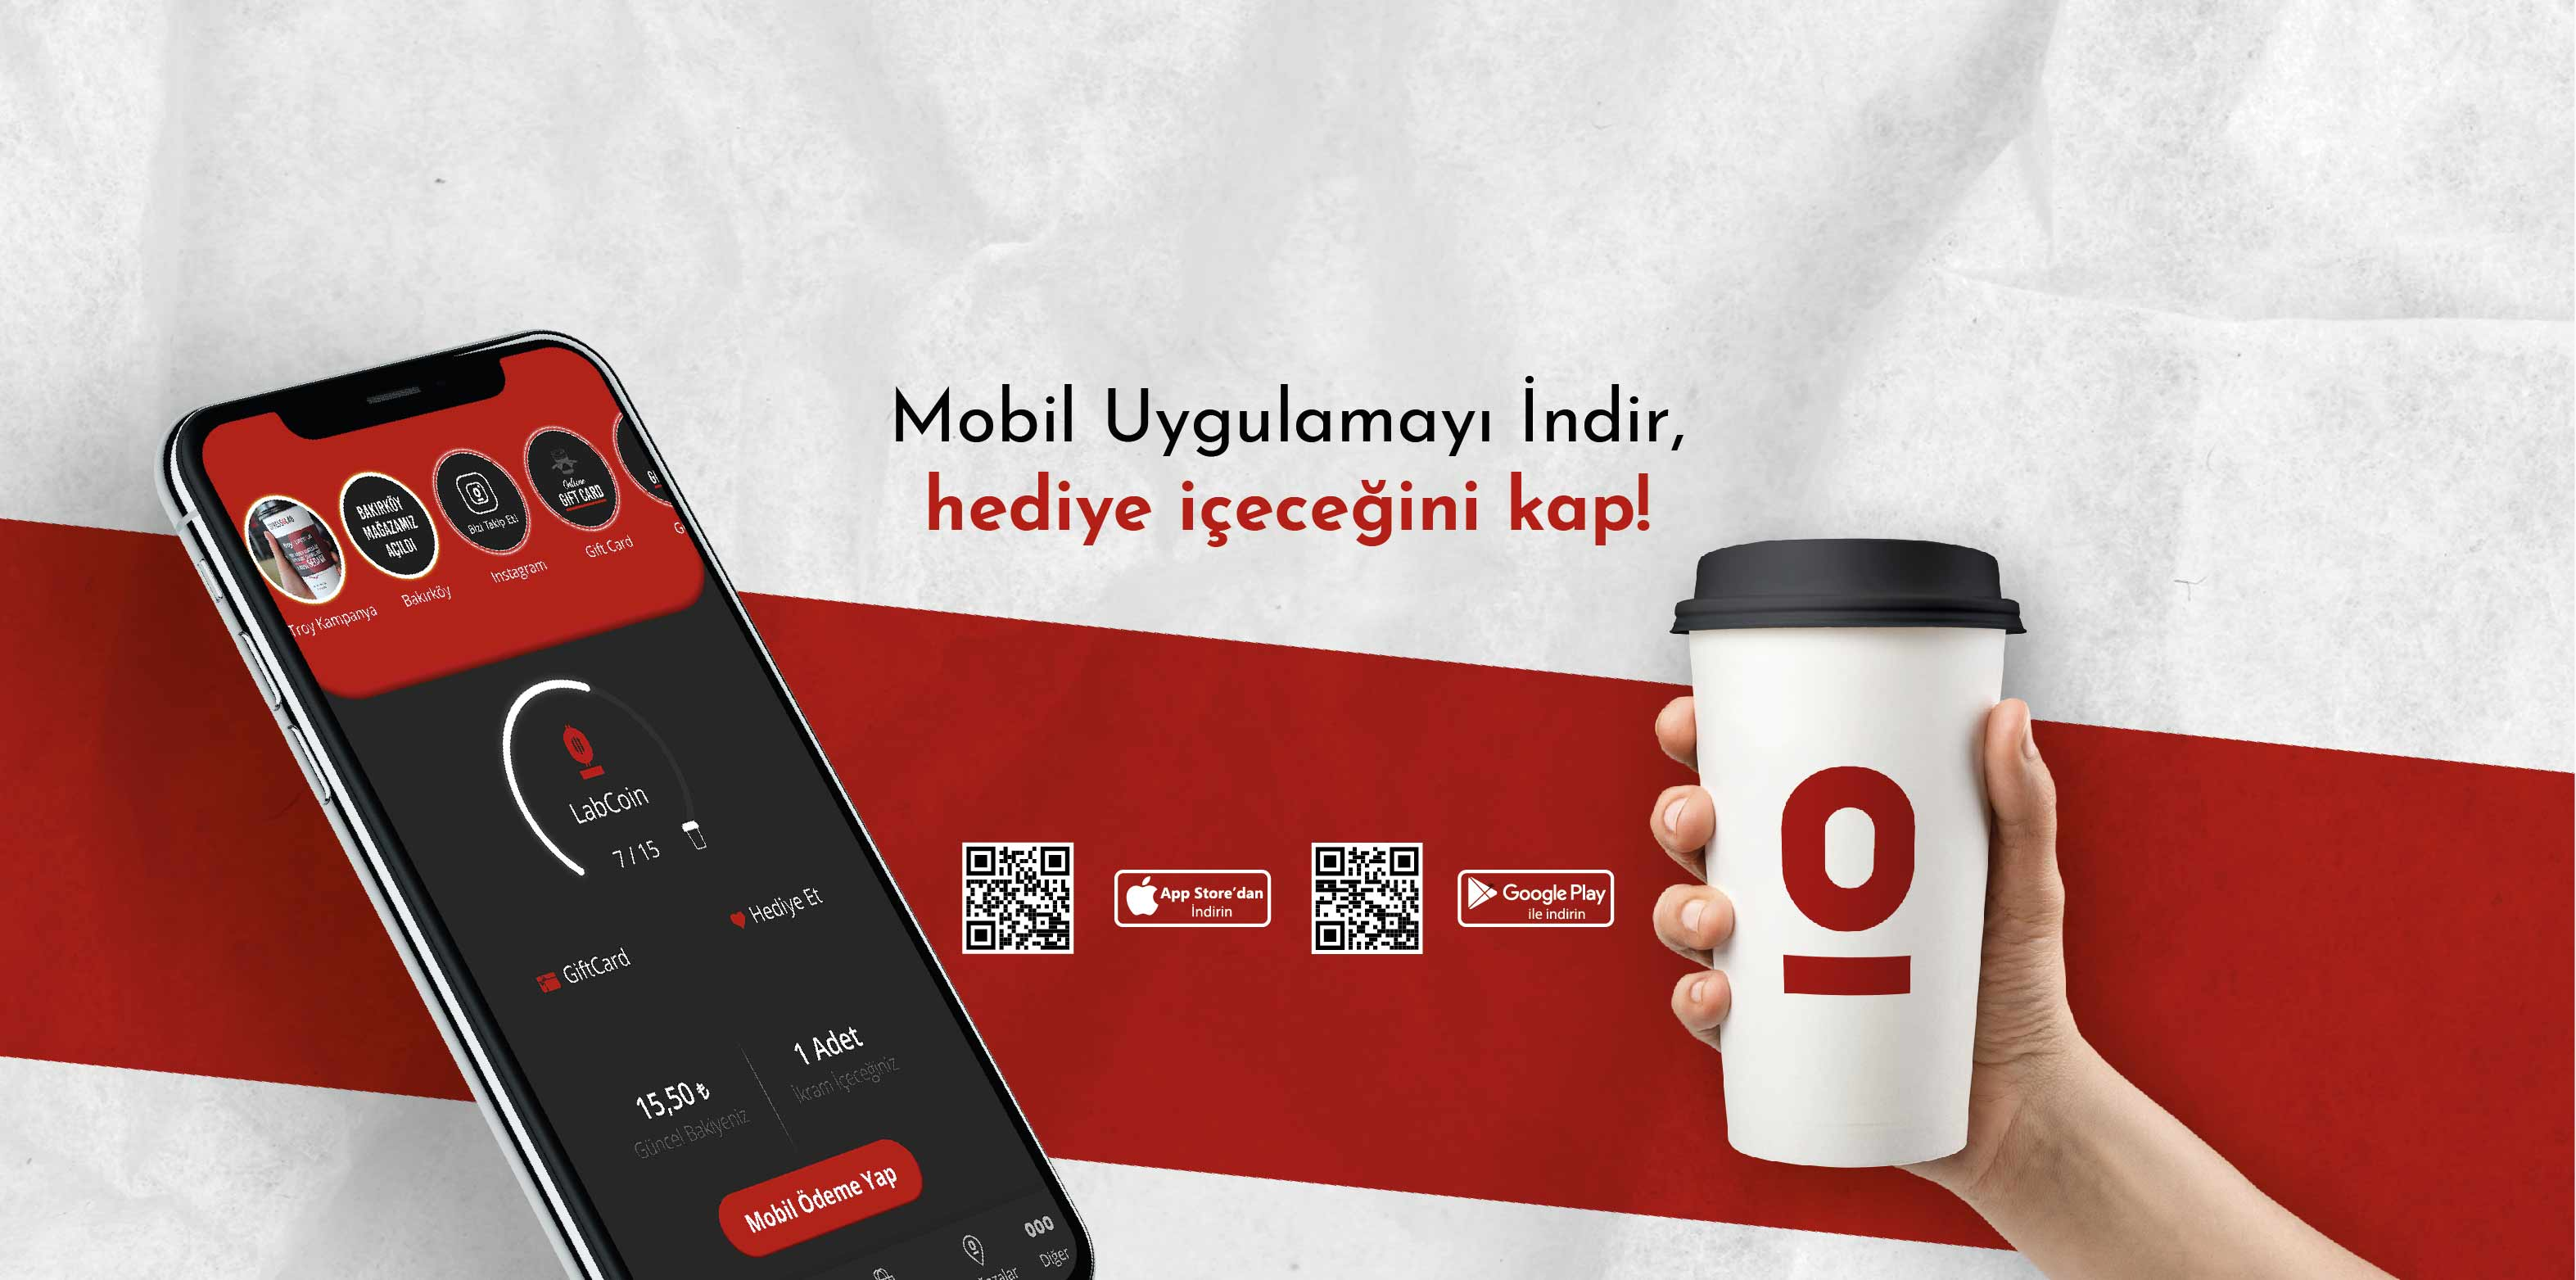 Download the Mobile Application, grab the gift drink!